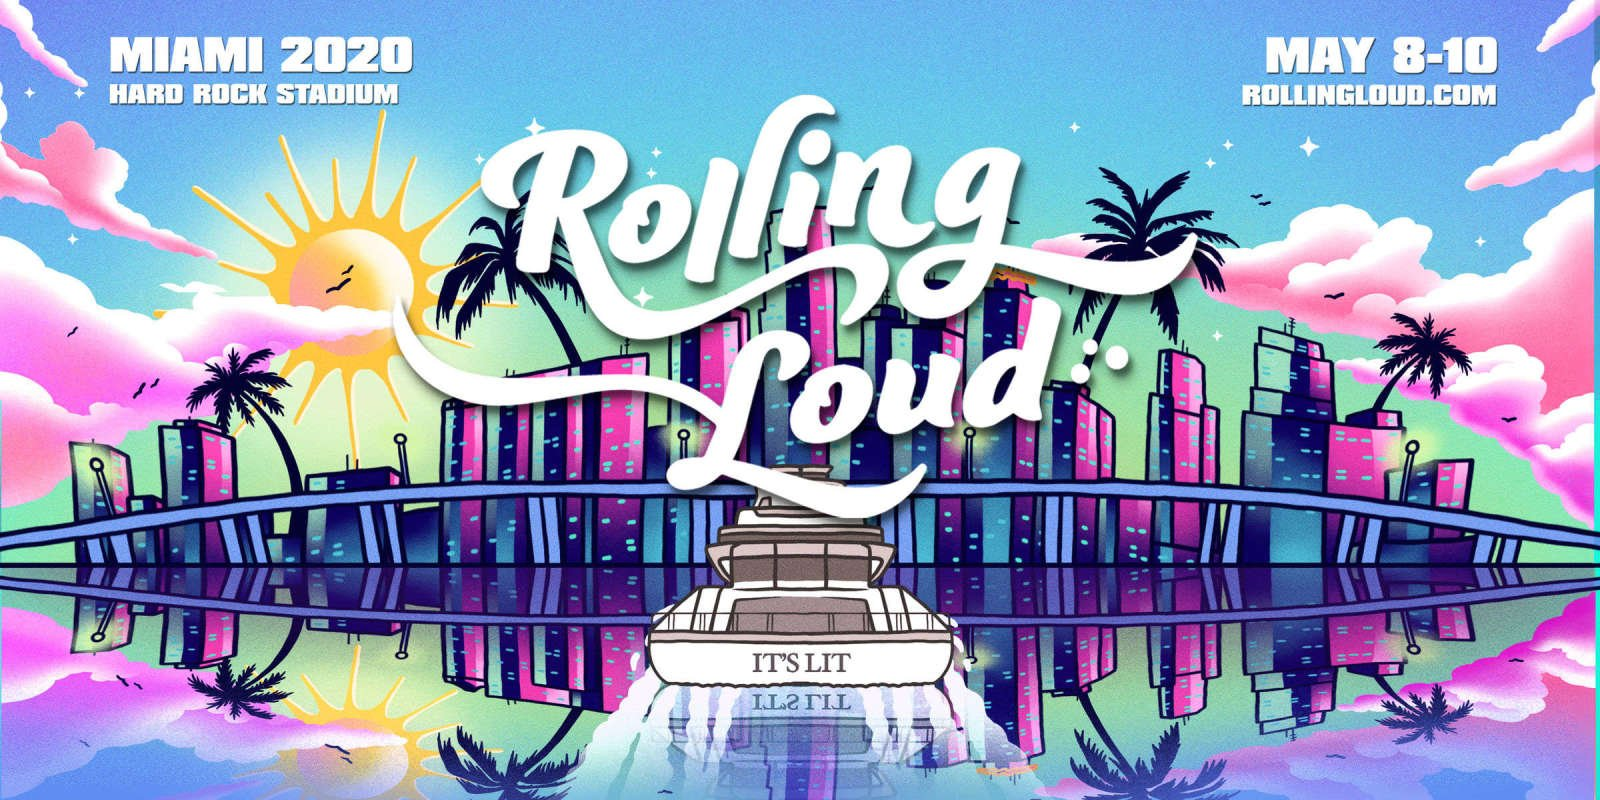 Rolling Loud Miami artwork file and hero images